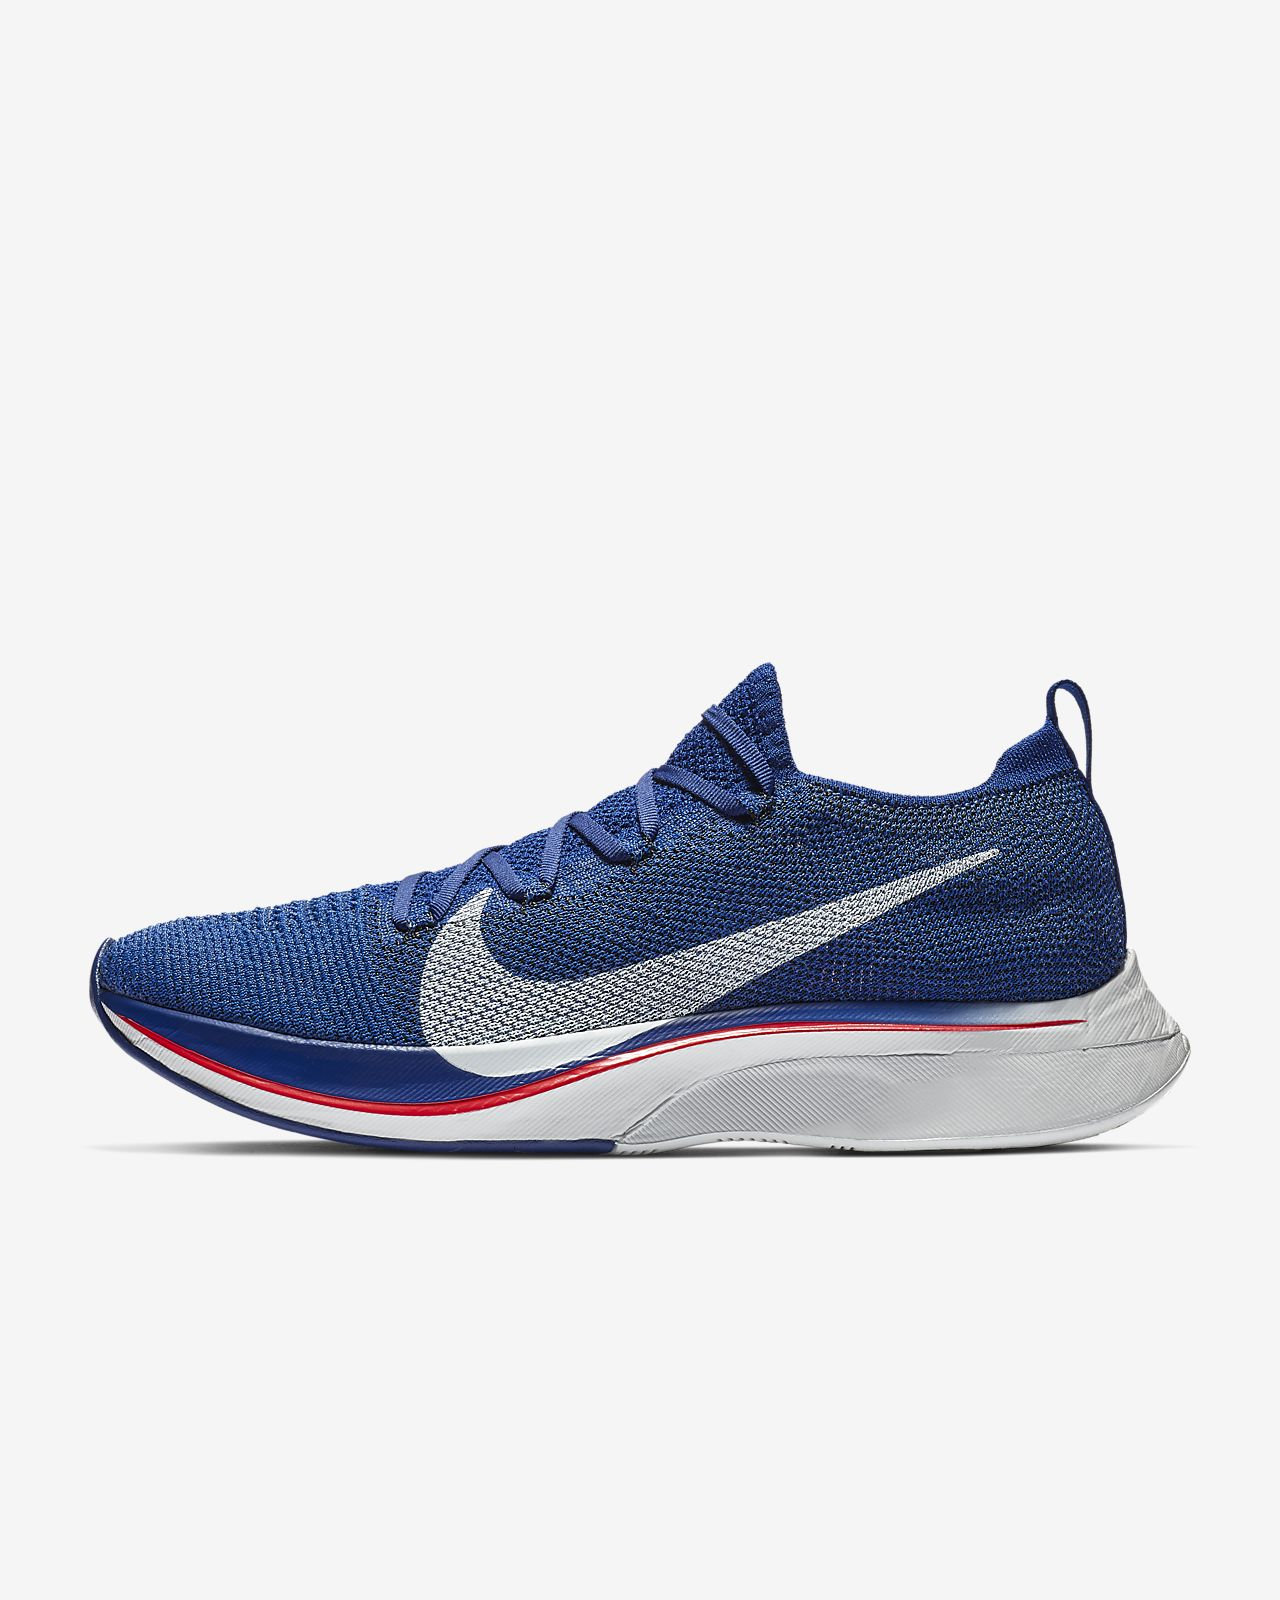 lowest price afa37 21122 Nike Vaporfly 4% Flyknit